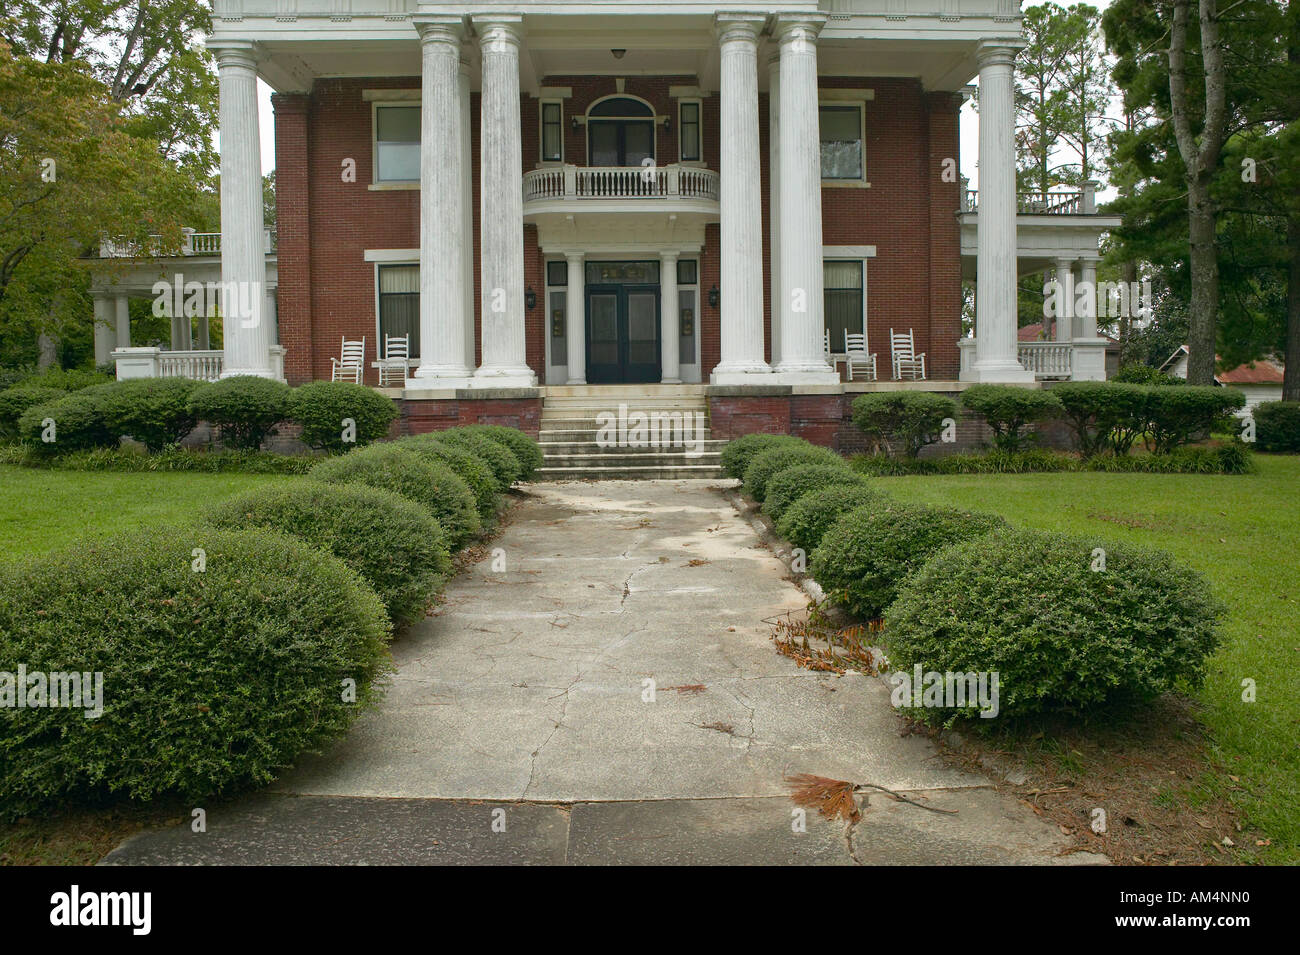 Southern houses in disrepair along Highway 22 in Central Georgia - Stock Image